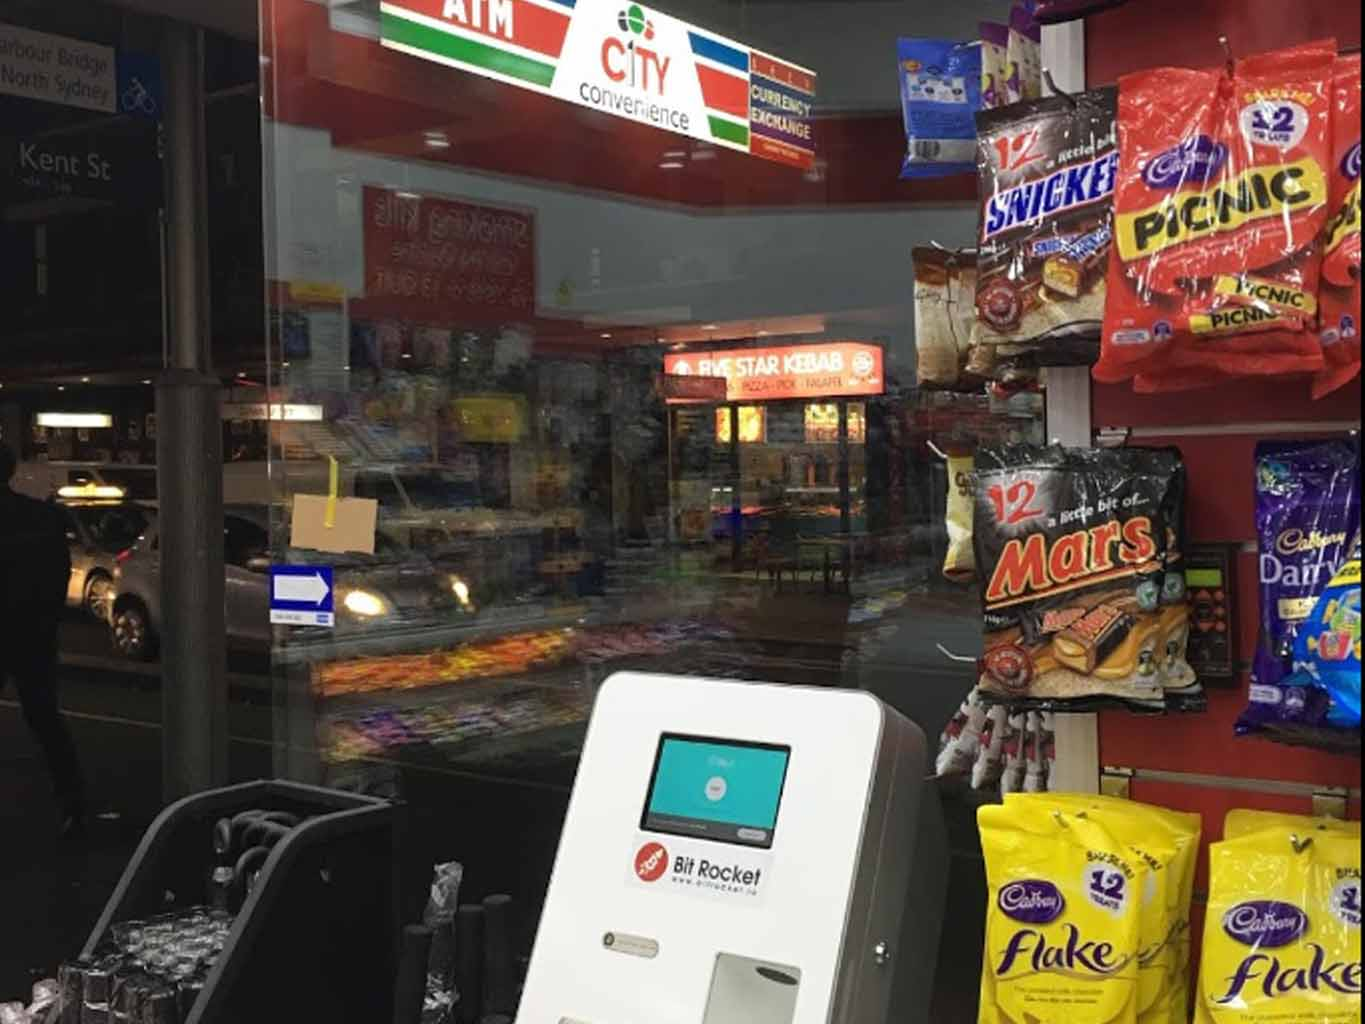 Bitrocket Buy Bitcoin ATM Liverpool St, Sydney 2000